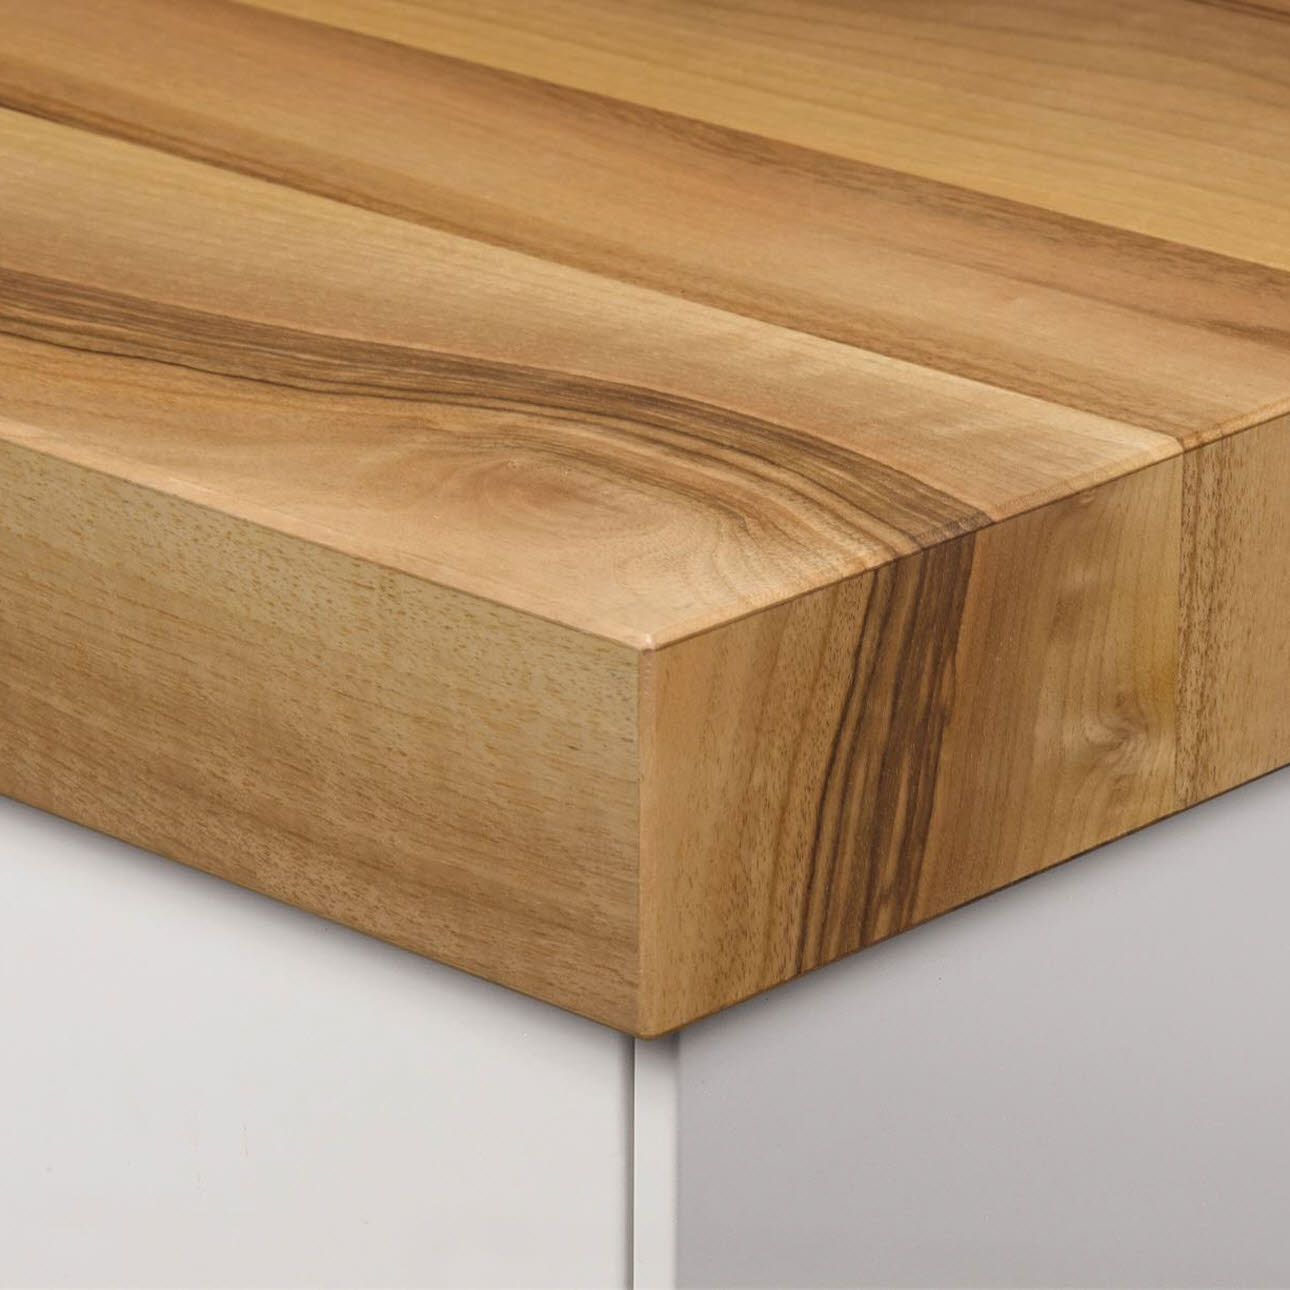 Worktop 6 cm, walnut